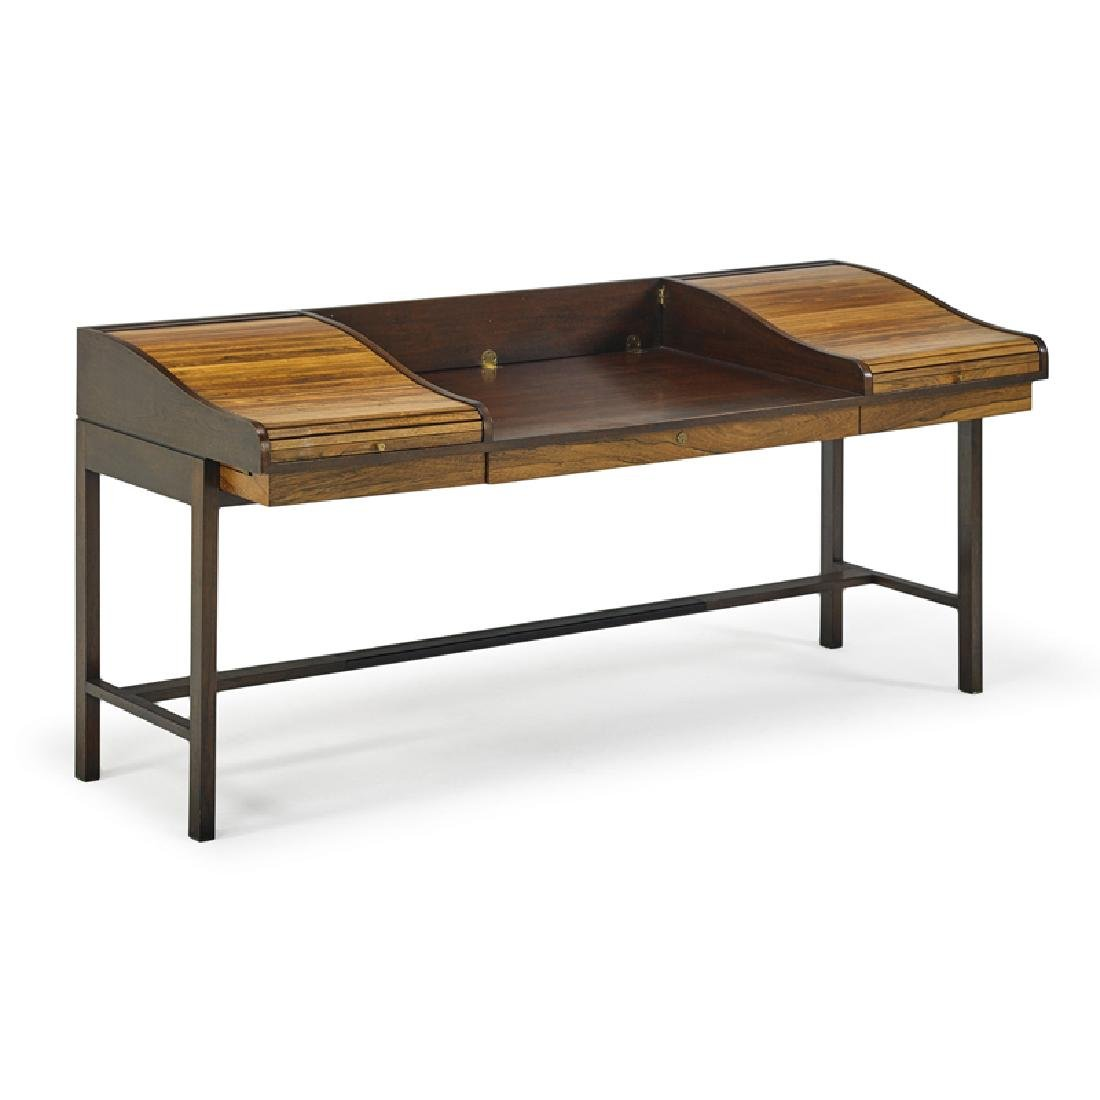 EDWARD WORMLEY Tambour desk